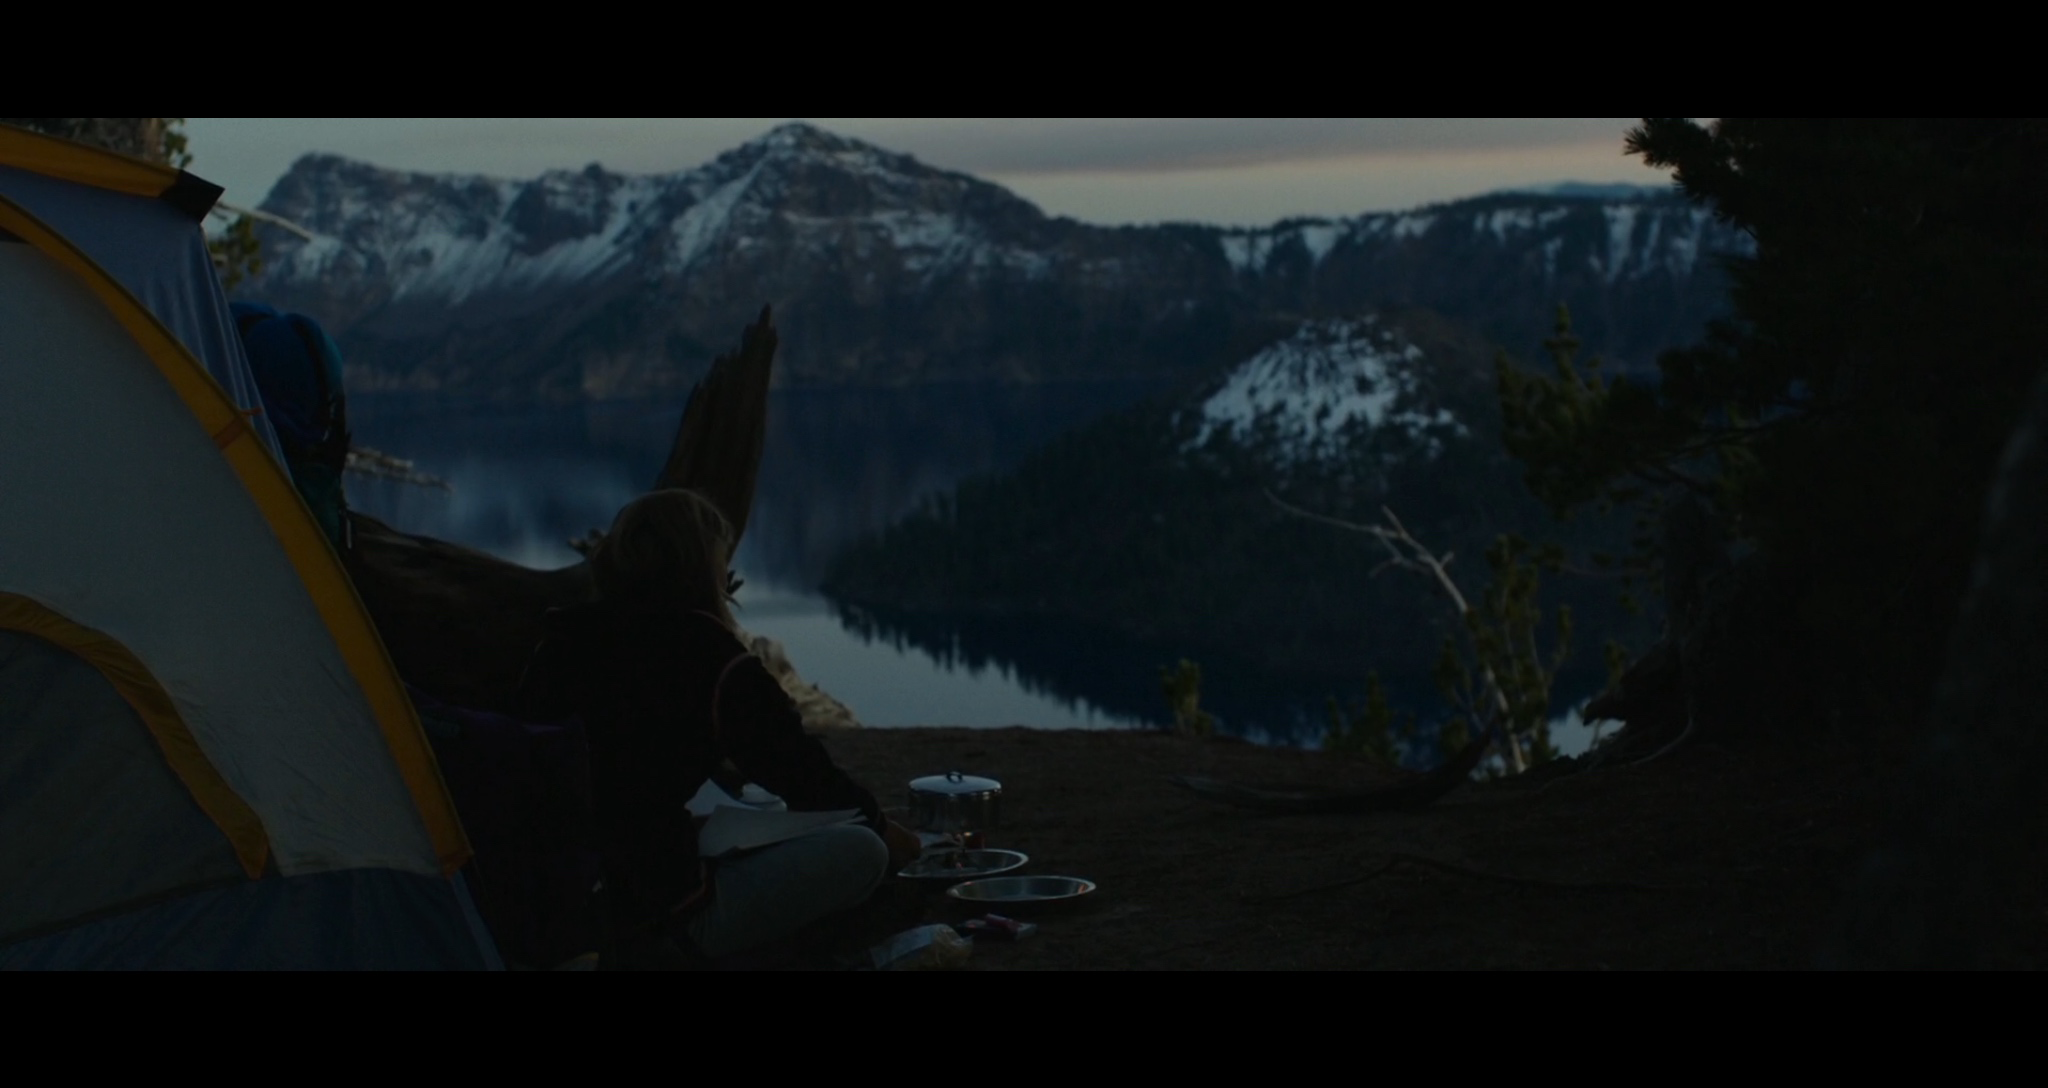 Screenshot of a scene filmed at Crater Lake as Cheryl (Reese Witherspoon) camps for the night at the deep blue lake.